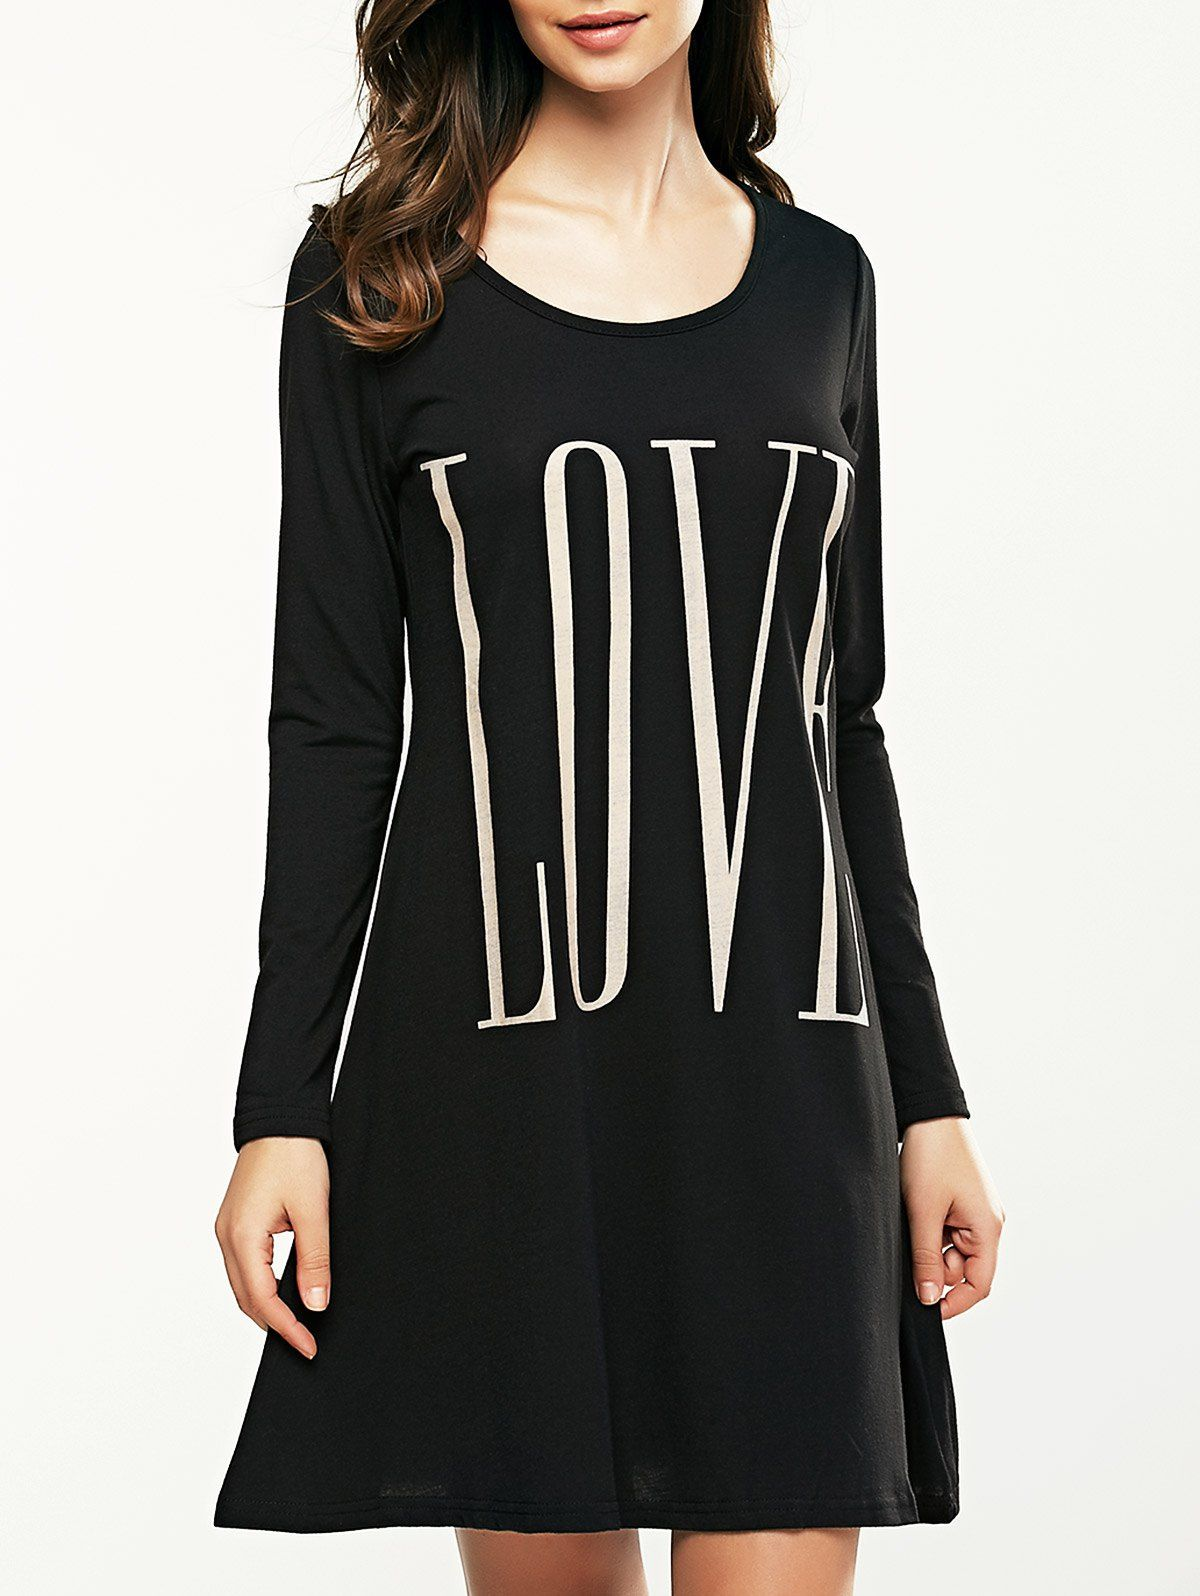 Long sleeve letter print t shirt dress shirts products and sleeve